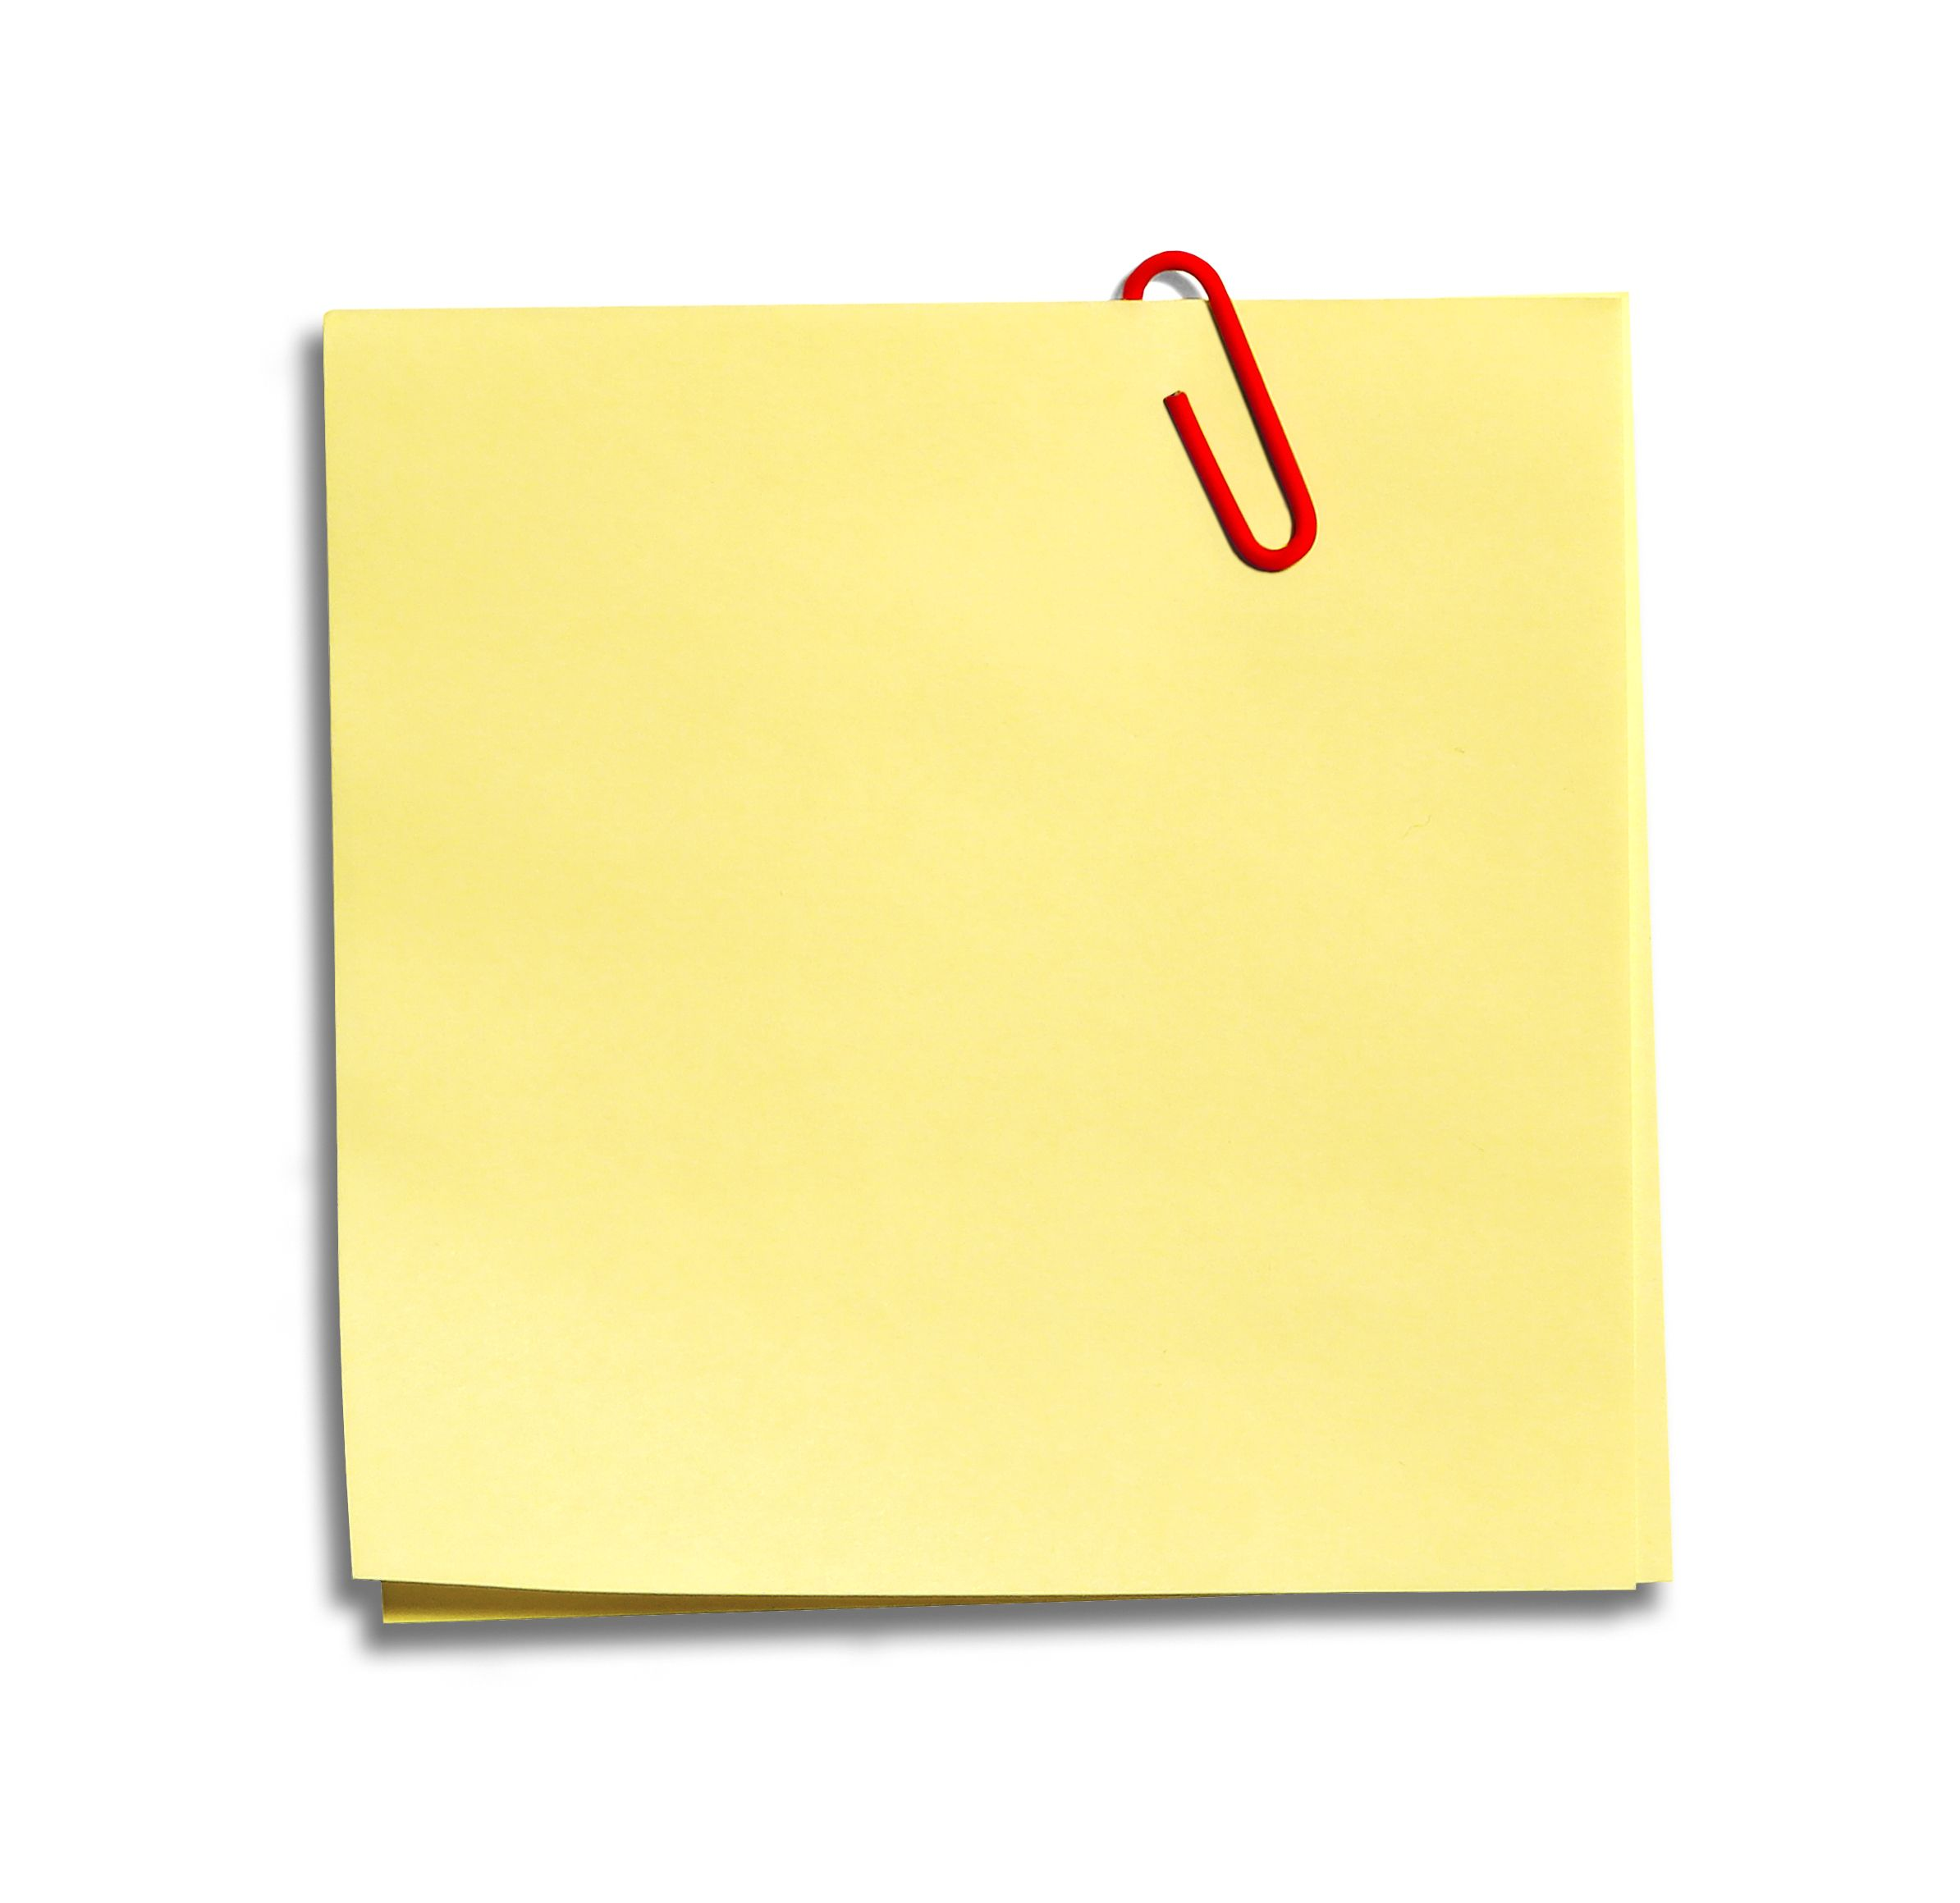 Post It Note Png Clipart Best - PNG Of A Note